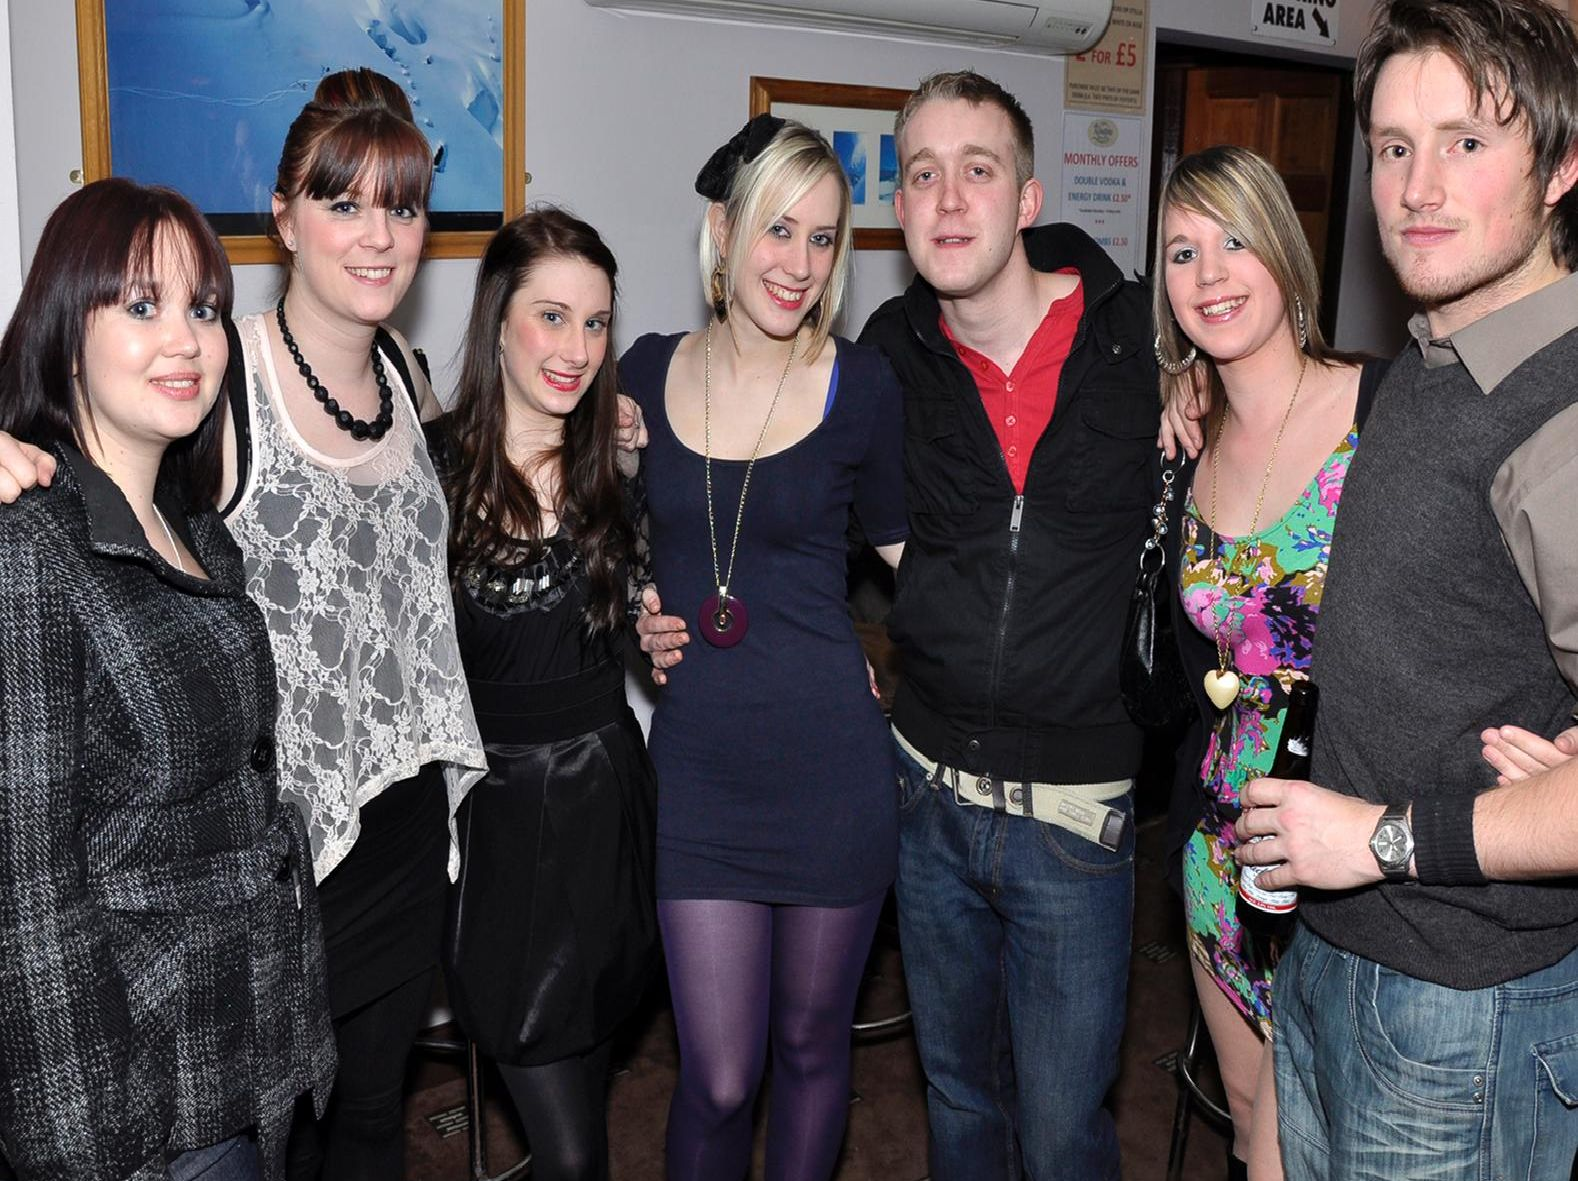 28 photos from a night out in Klosters in 2010.